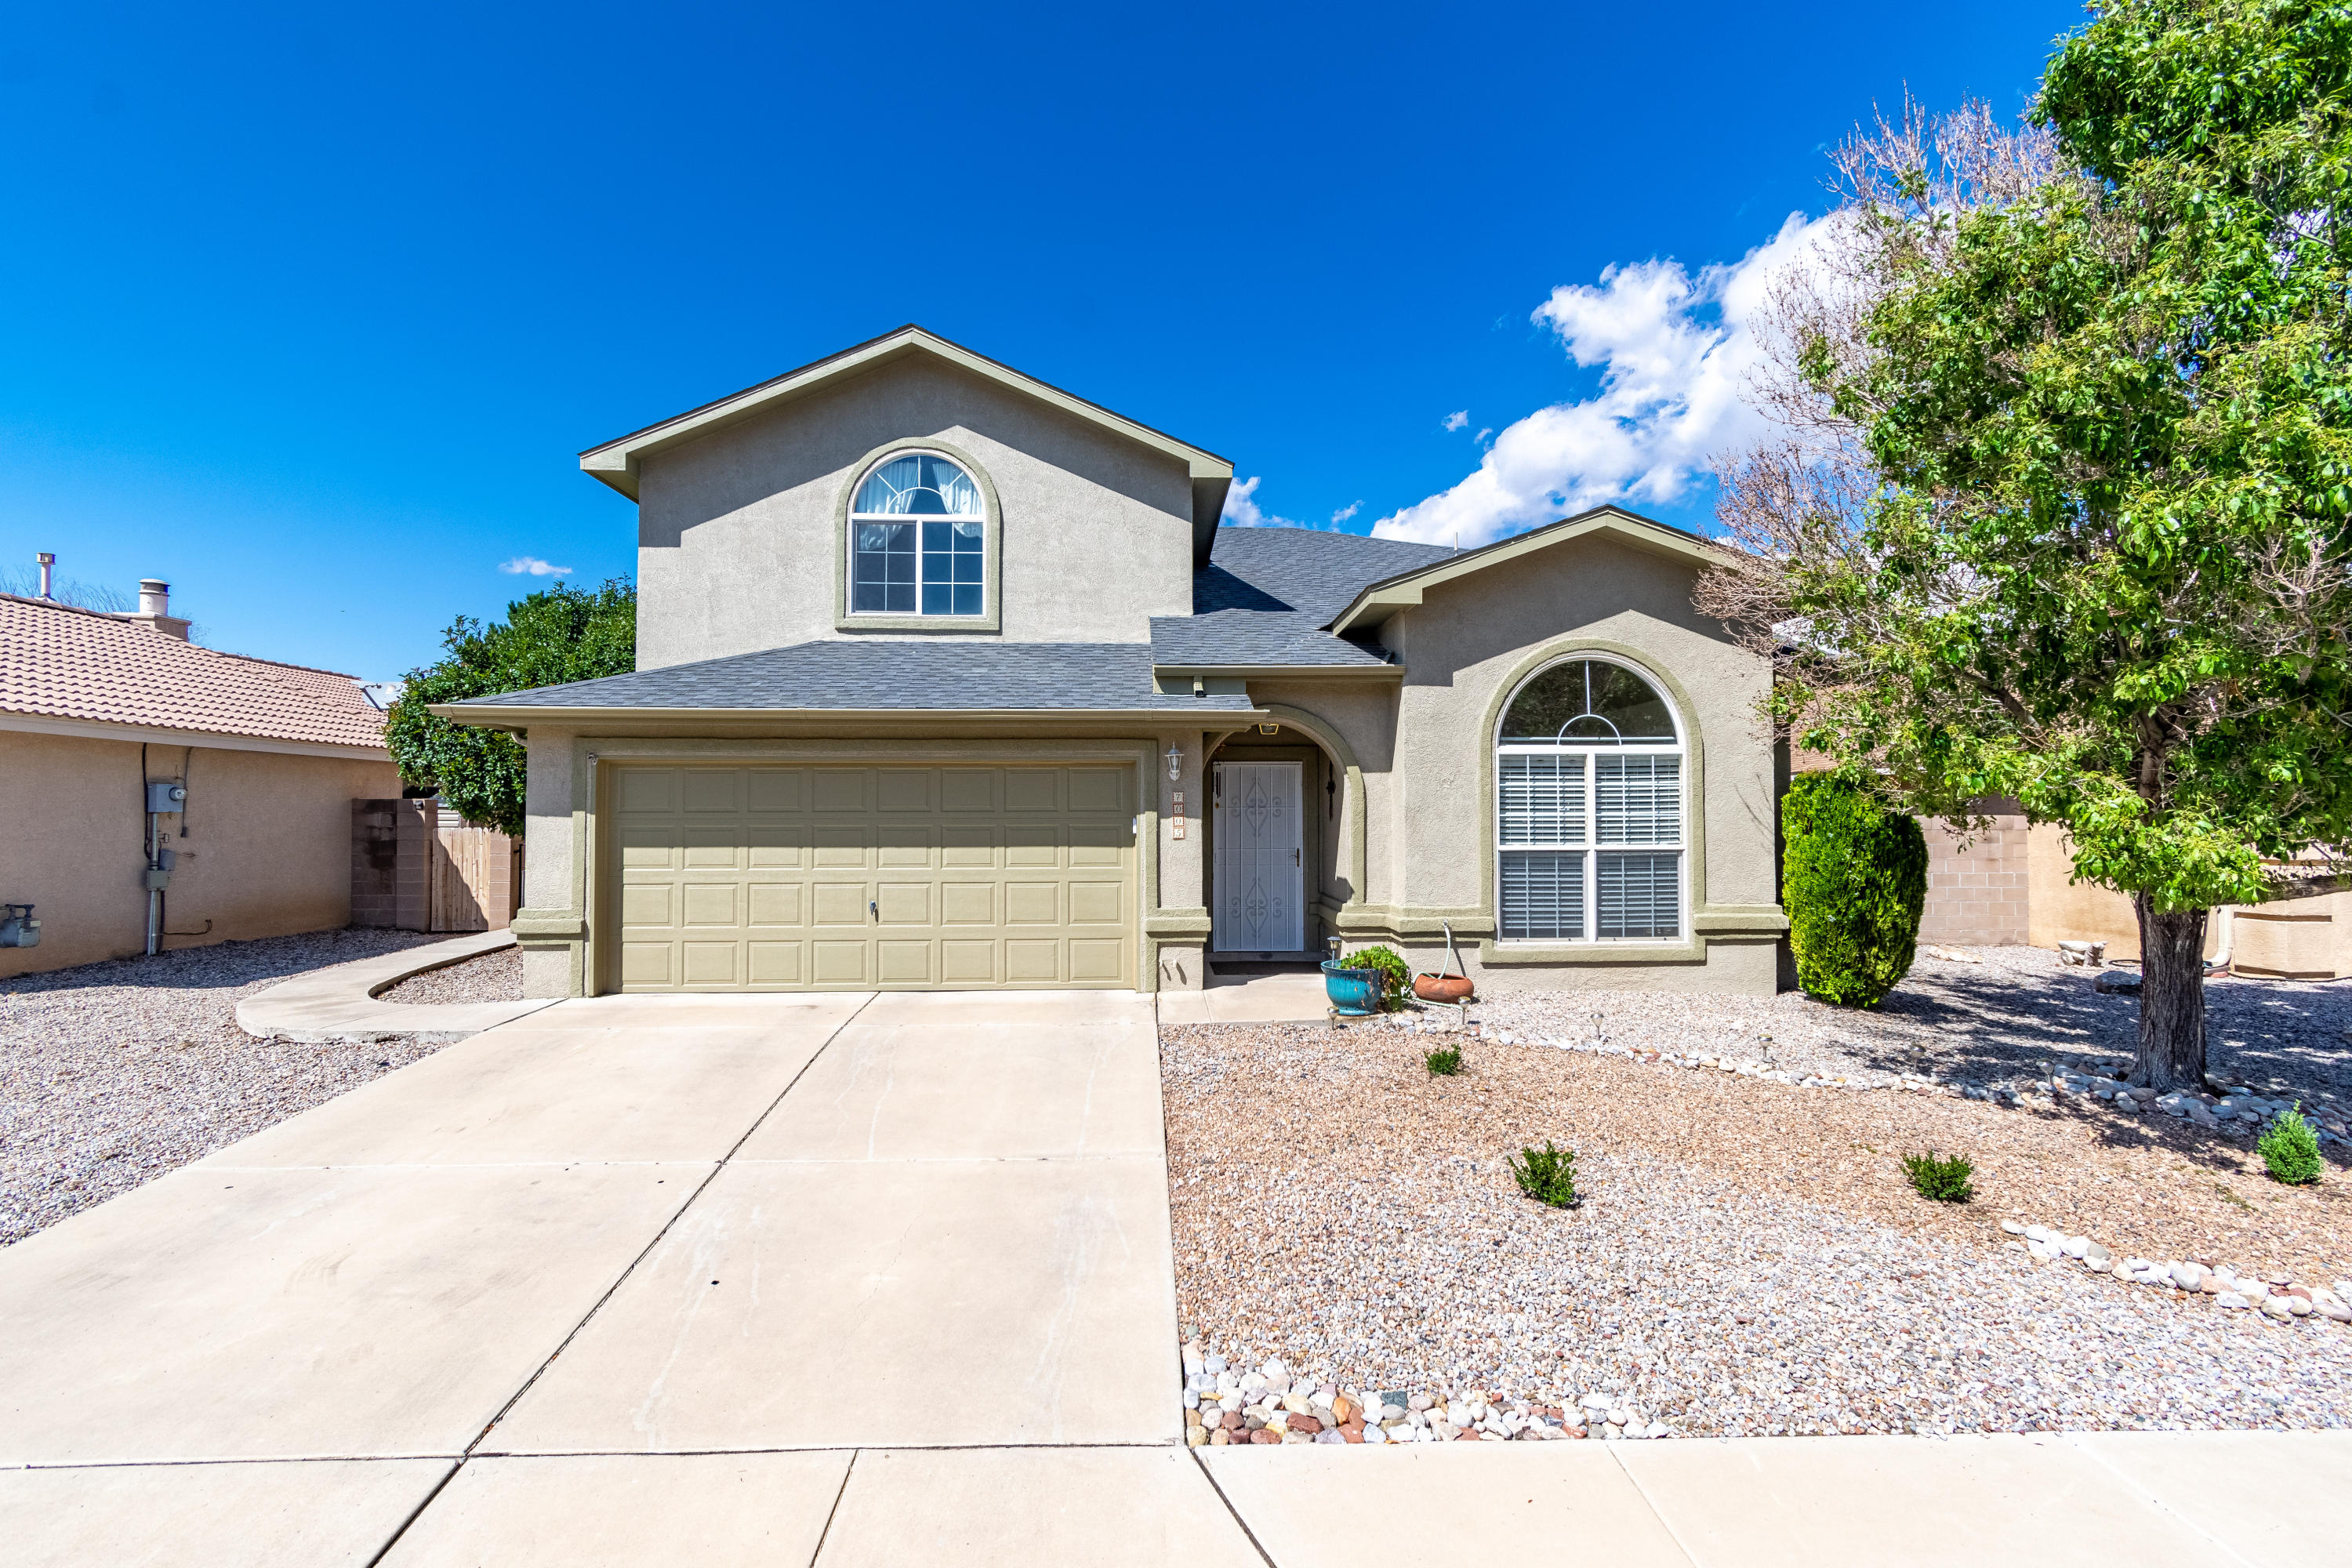 Wonderful Fuller home located on a cul-de-sac in the Ventana Ranch community! Home feature 2,513sf with 5 bedrooms, 3 bathrooms and 2 living areas. Spaciously designed kitchen with ample cabinet space, granite countertops, gas range with double oven, pantry and center island with seating space. Open living area with a cozy fireplace. guest room located on the 1st floor also makes a great office. Master suite with upgraded laminate flooring, a private balcony and owners bath. Bath hosts dual sinks, a relaxing garden tub, walk-in shower and closet! Great backyard space fully walled and landscaped with a covered patio and pergola!